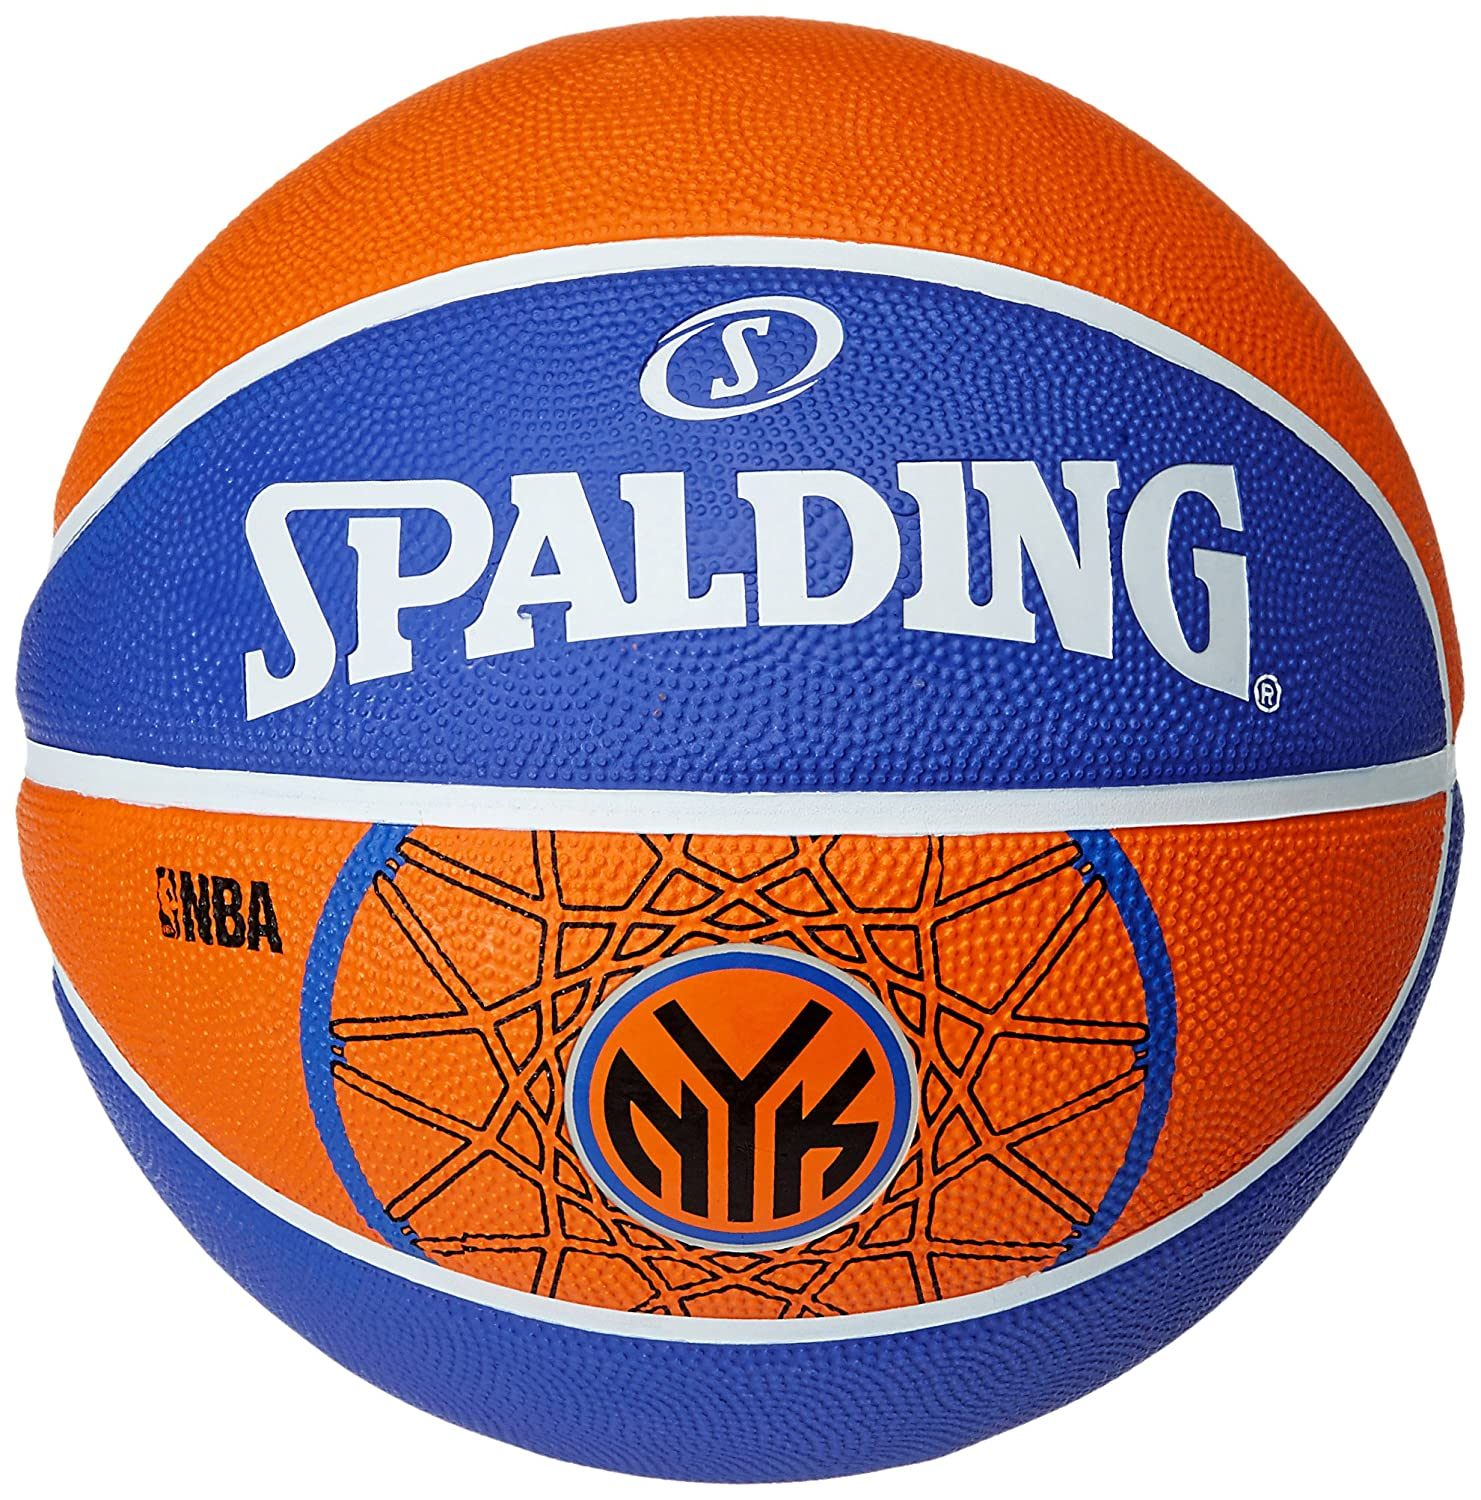 Spalding New York Knicks Basketball-Ballon Taille 7 3001587012017